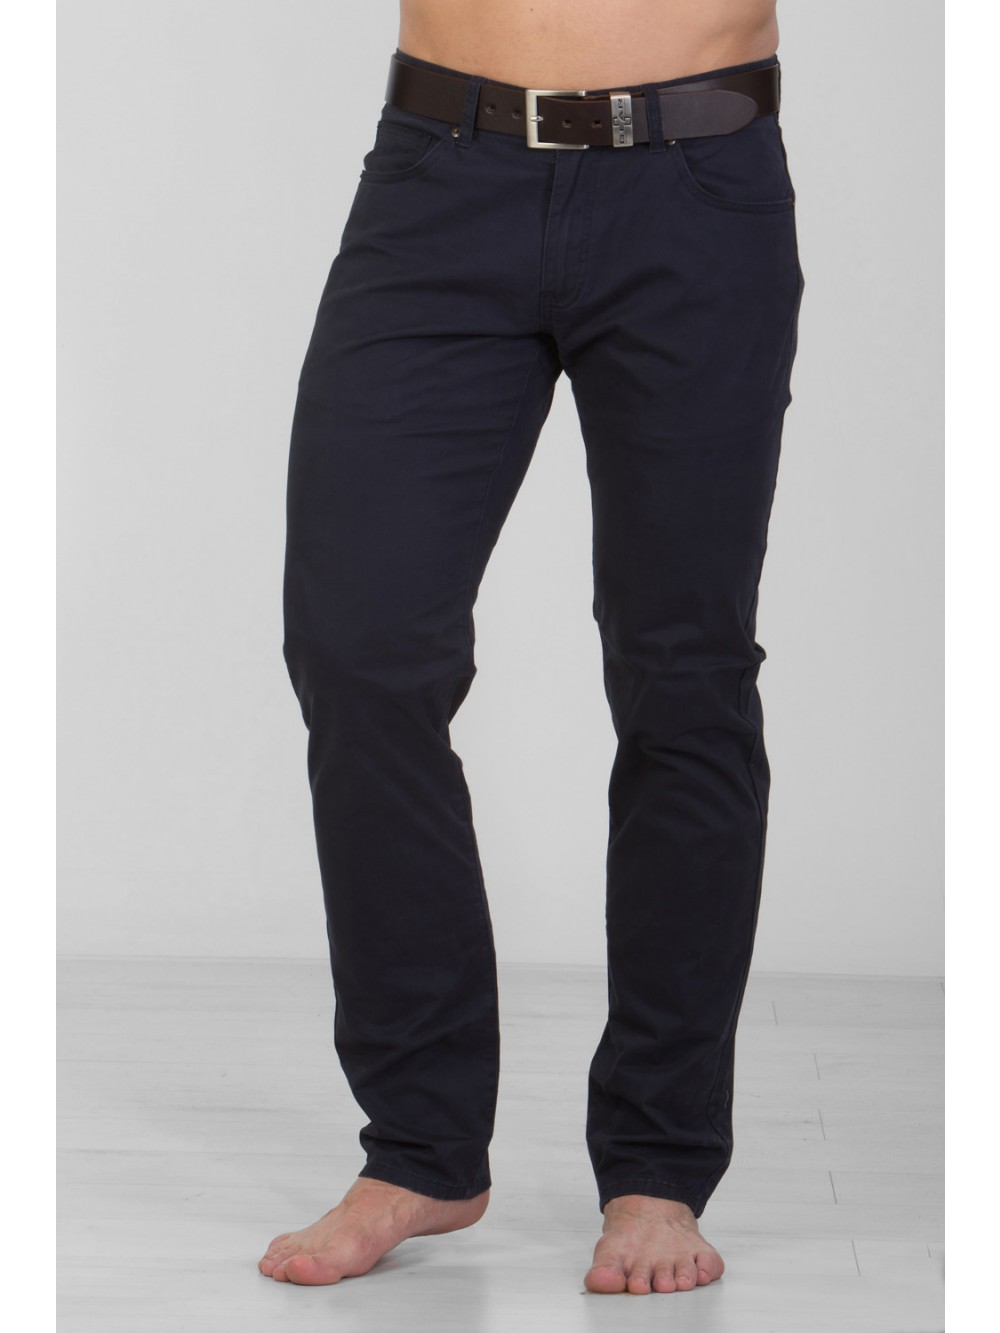 Mens Stretch Slim Fit CHINOS JSM248 - navy